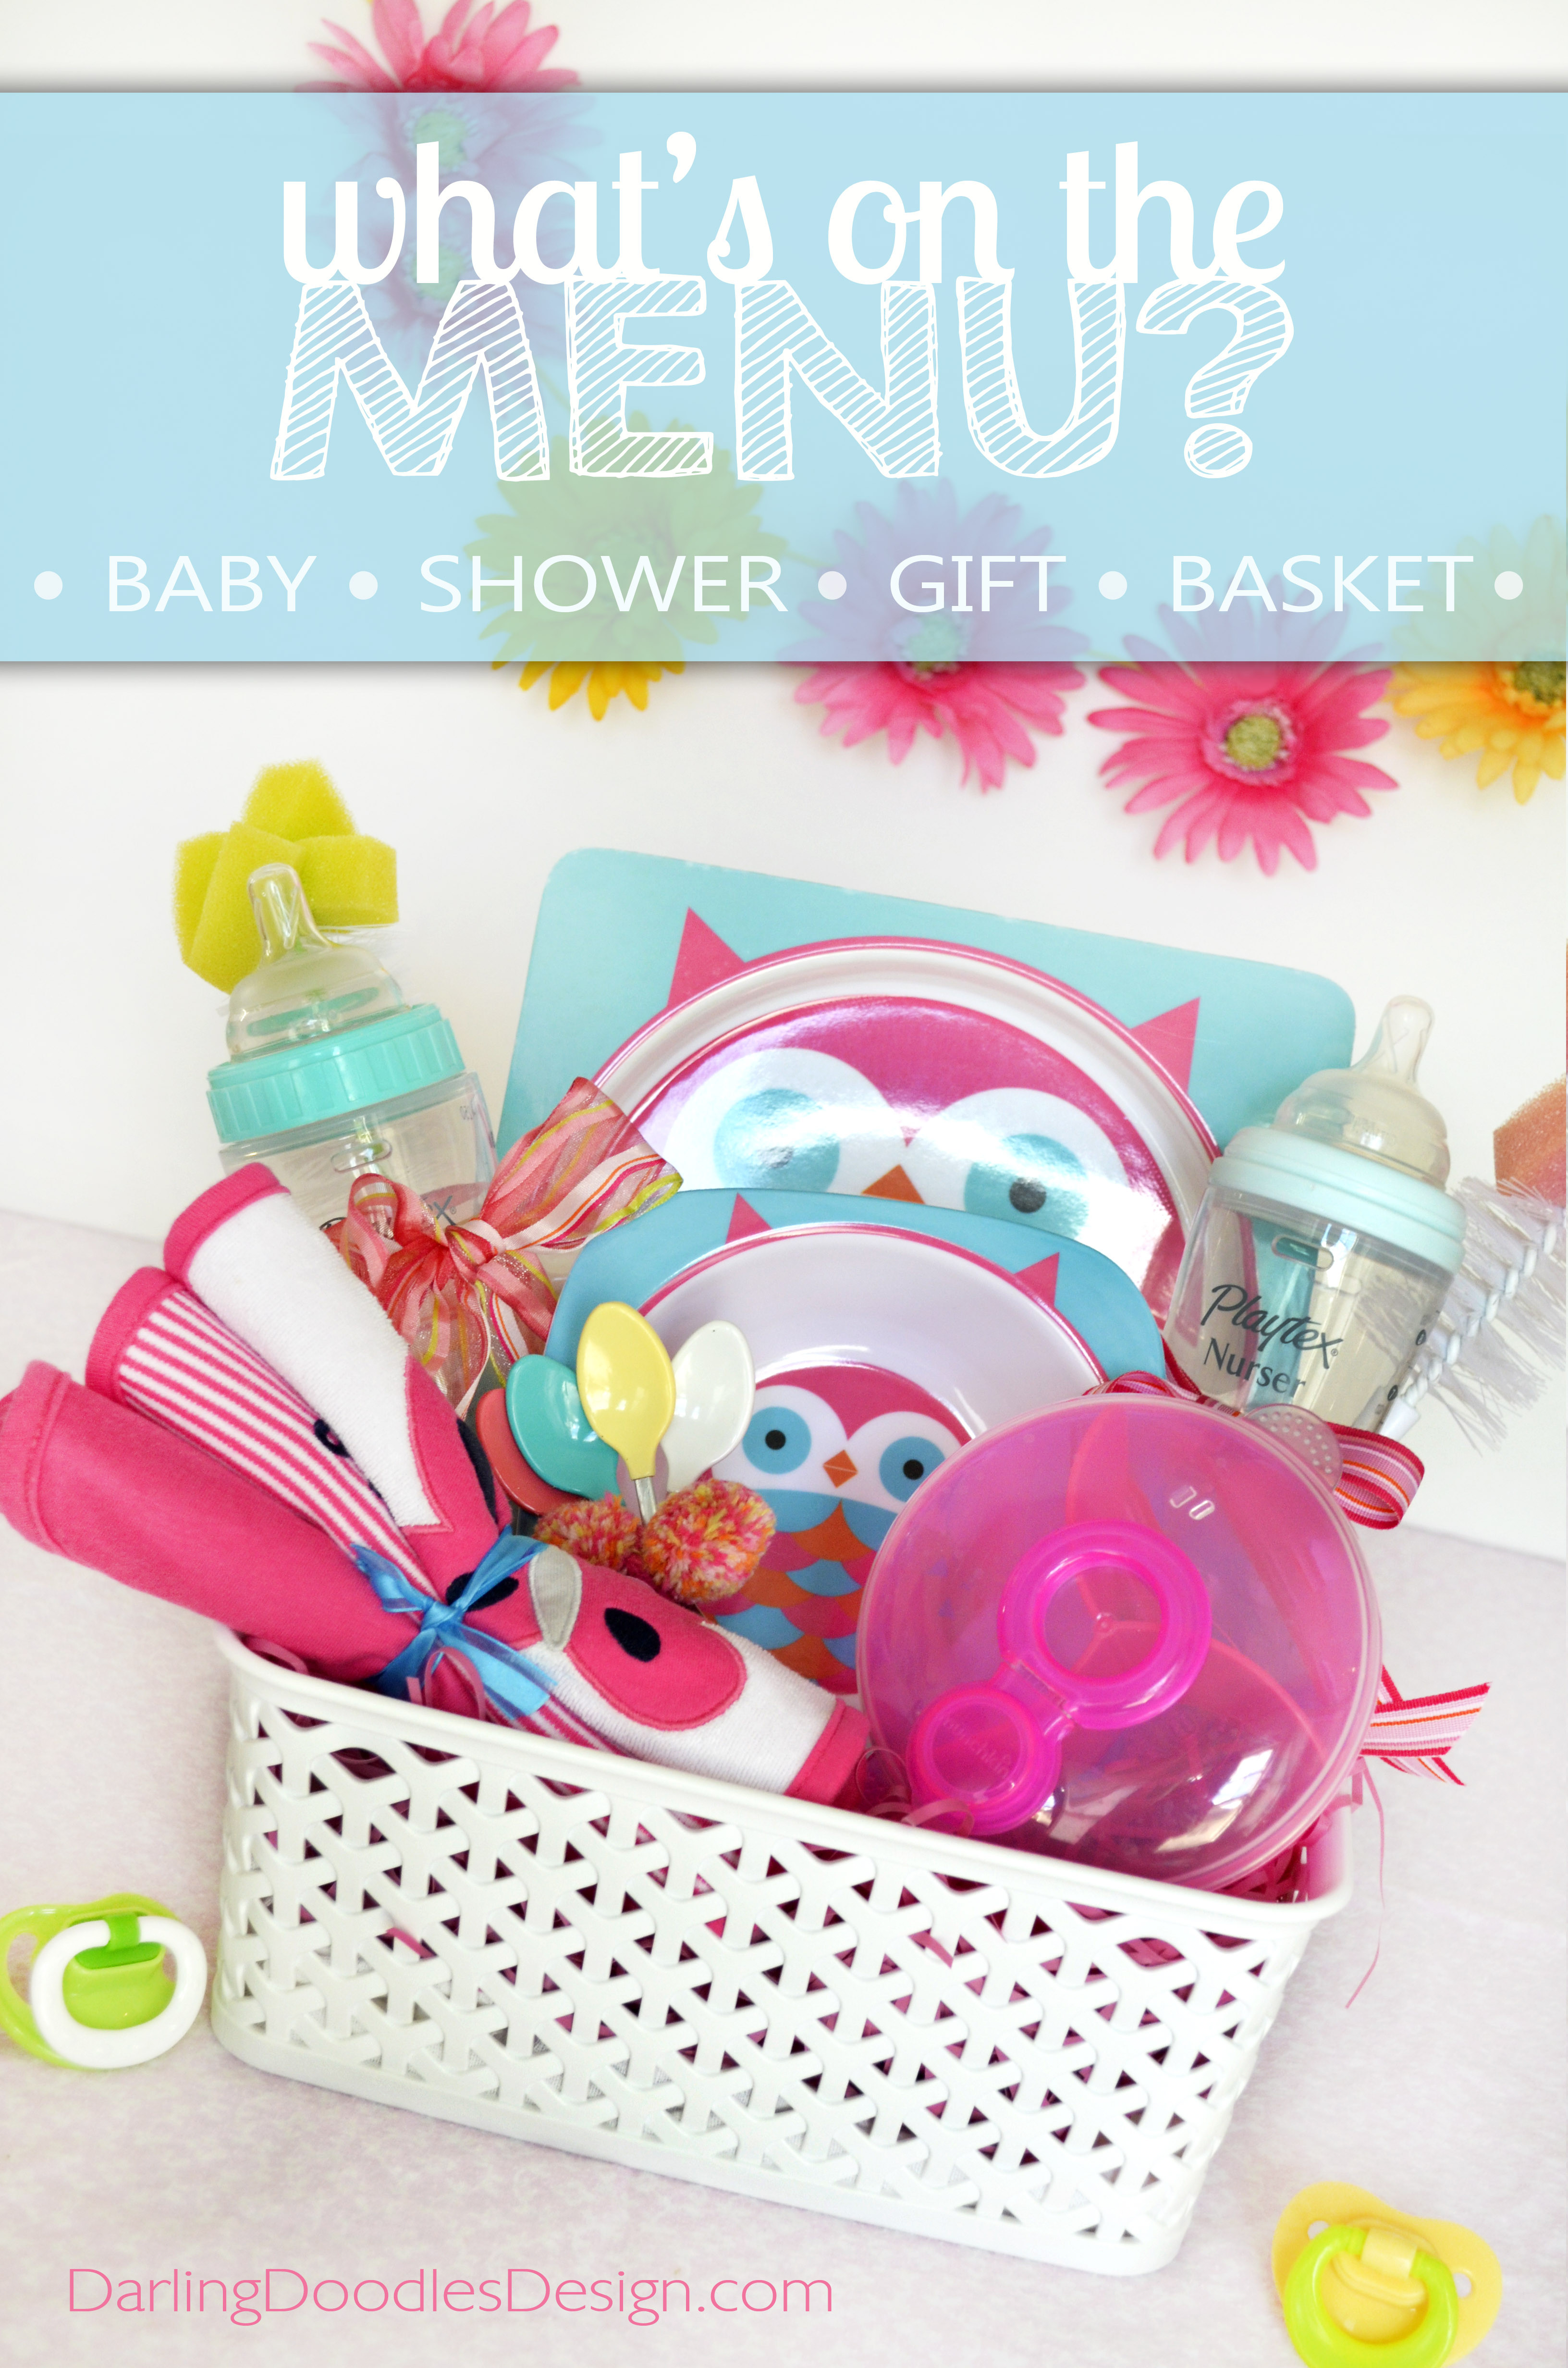 Best ideas about Baby Shower DIY . Save or Pin Baby Shower Now.